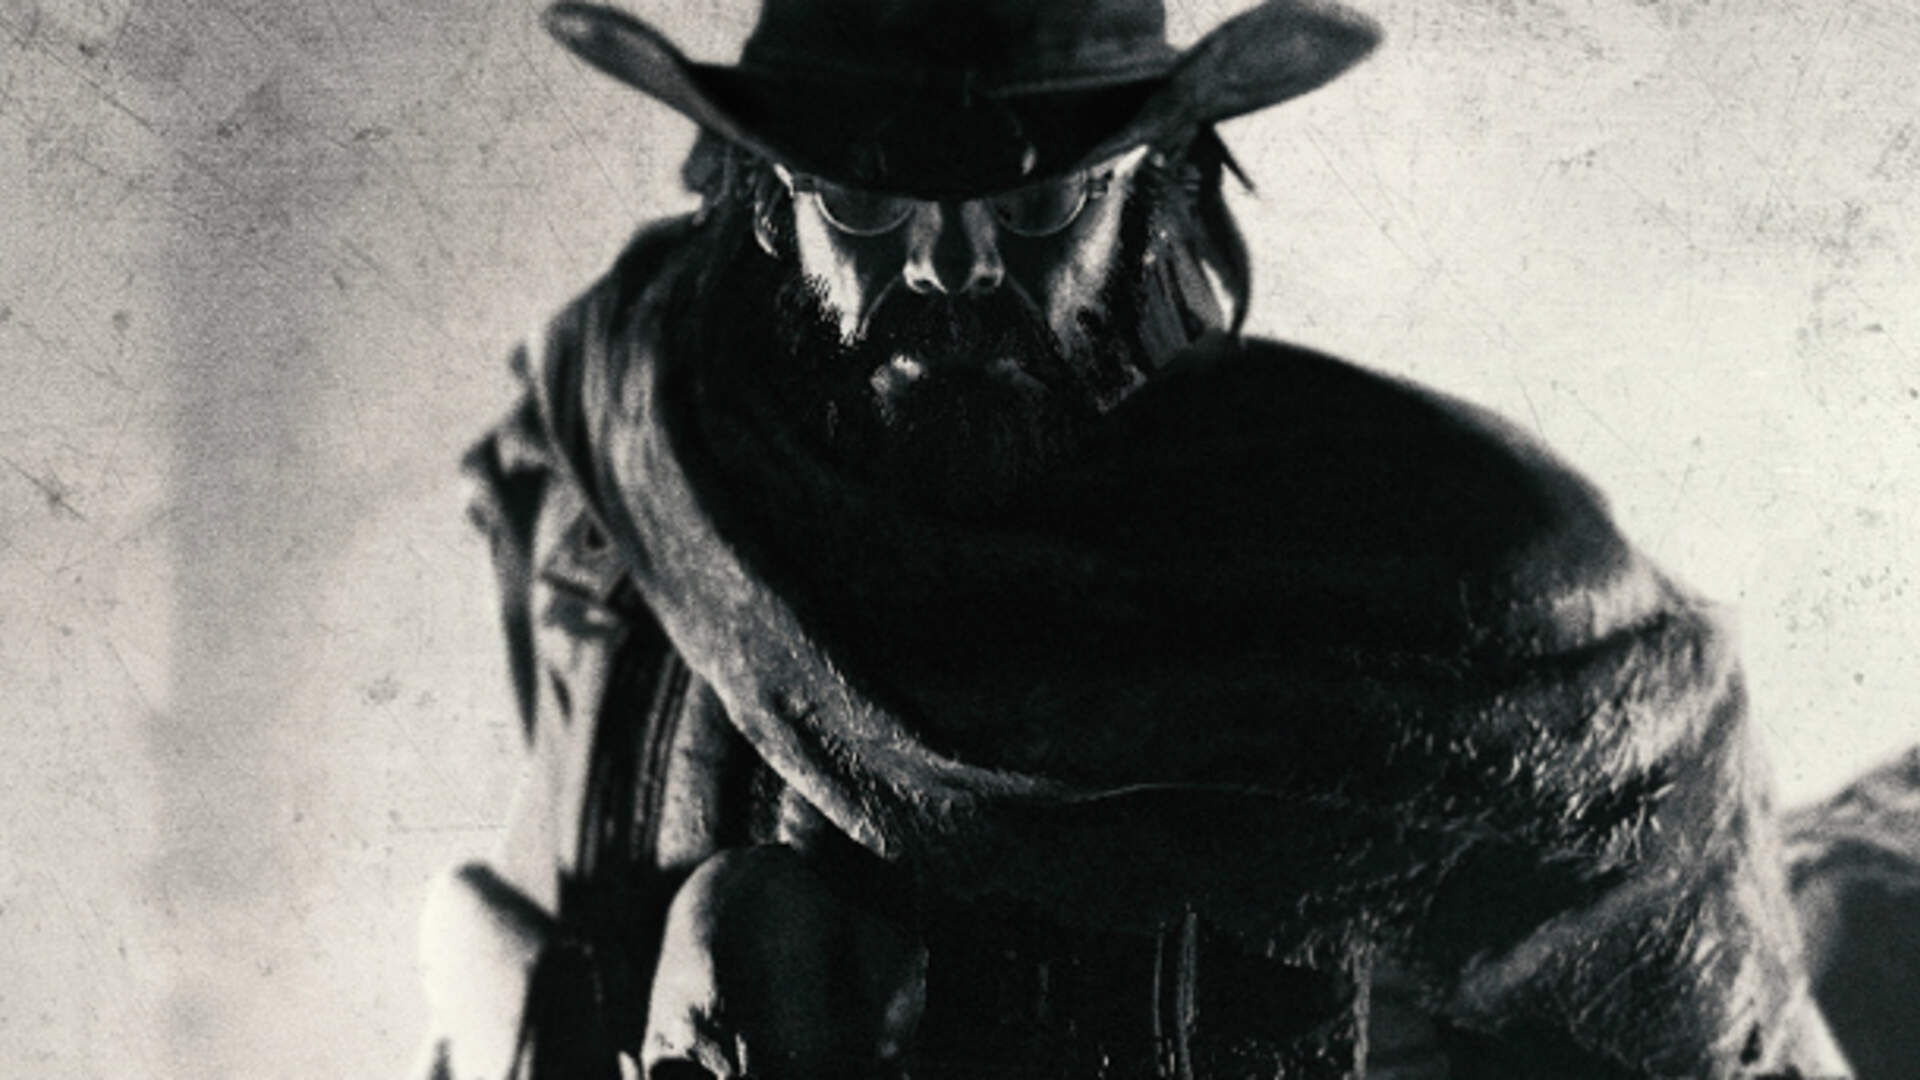 Hunt: Showdown's Unique Take on the Survival Shooter Could Save Crytek